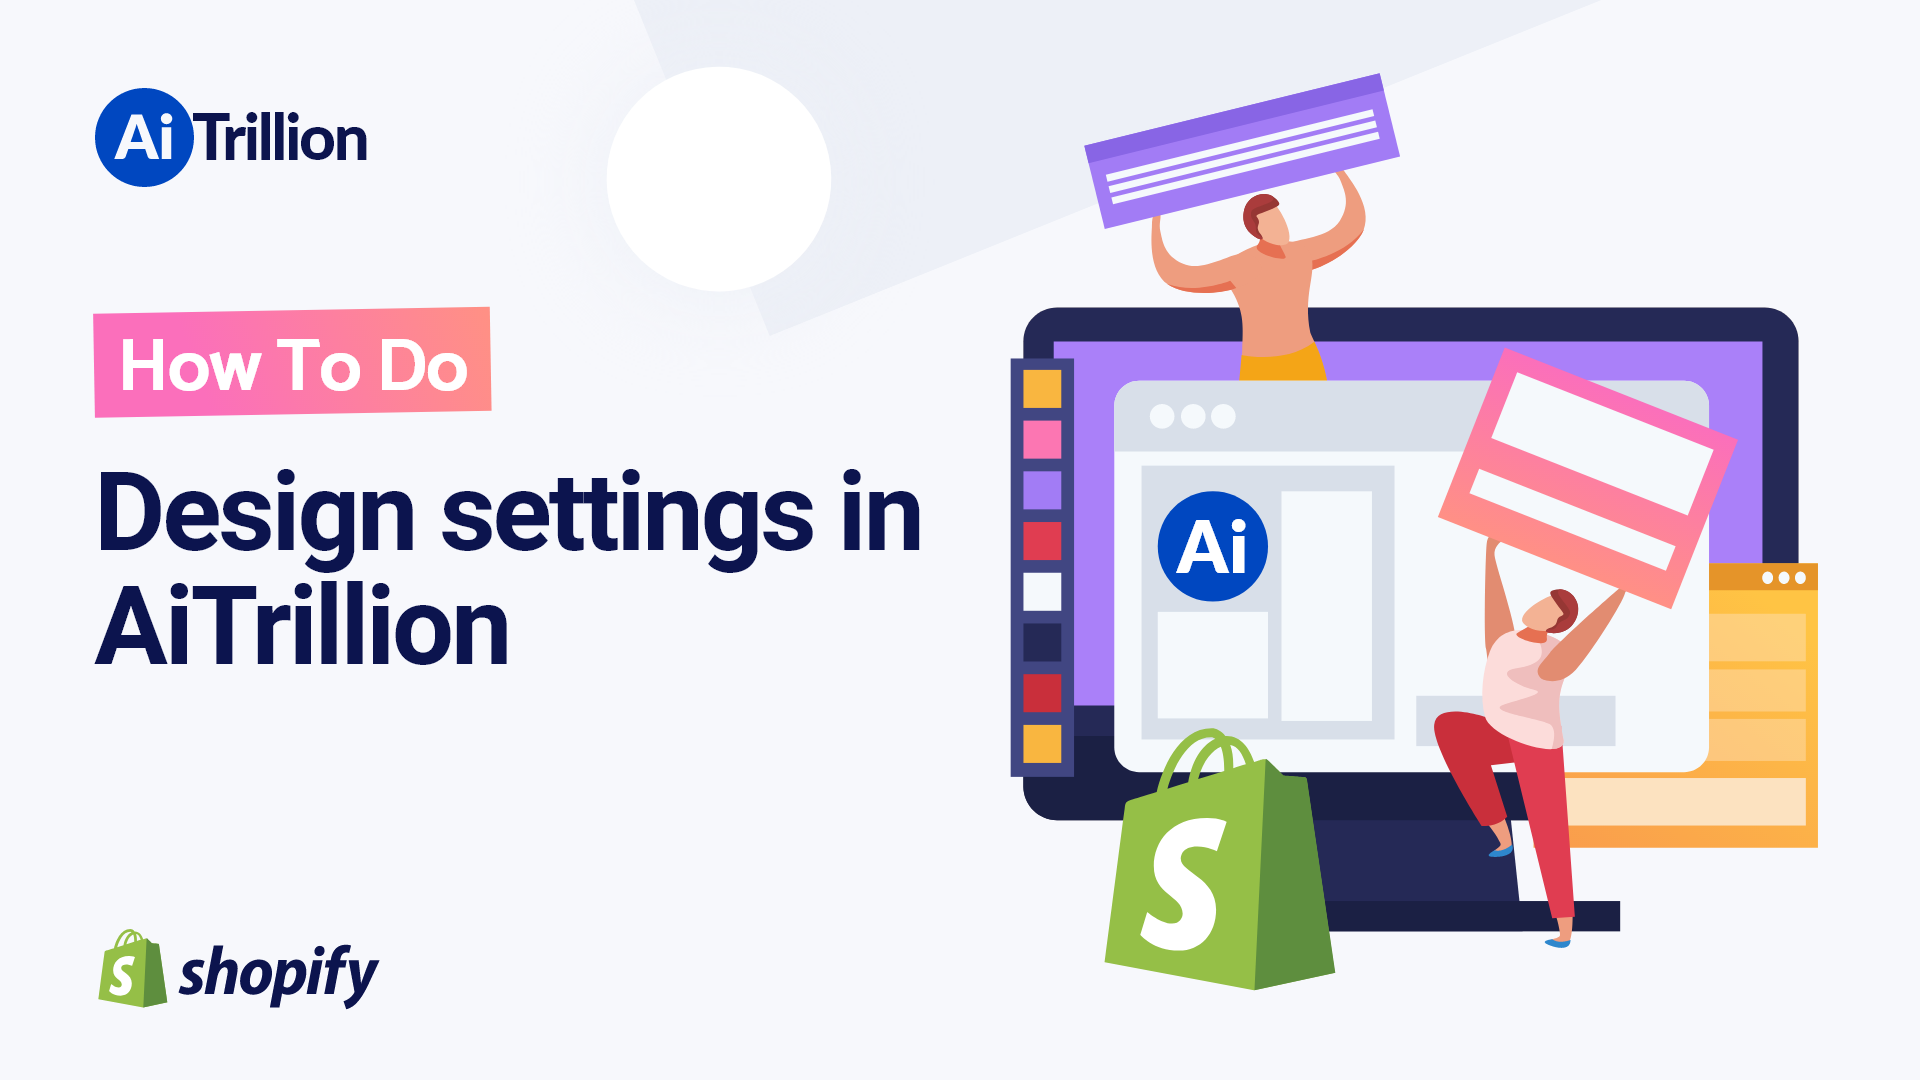 How To Do Design settings in AiTrillion